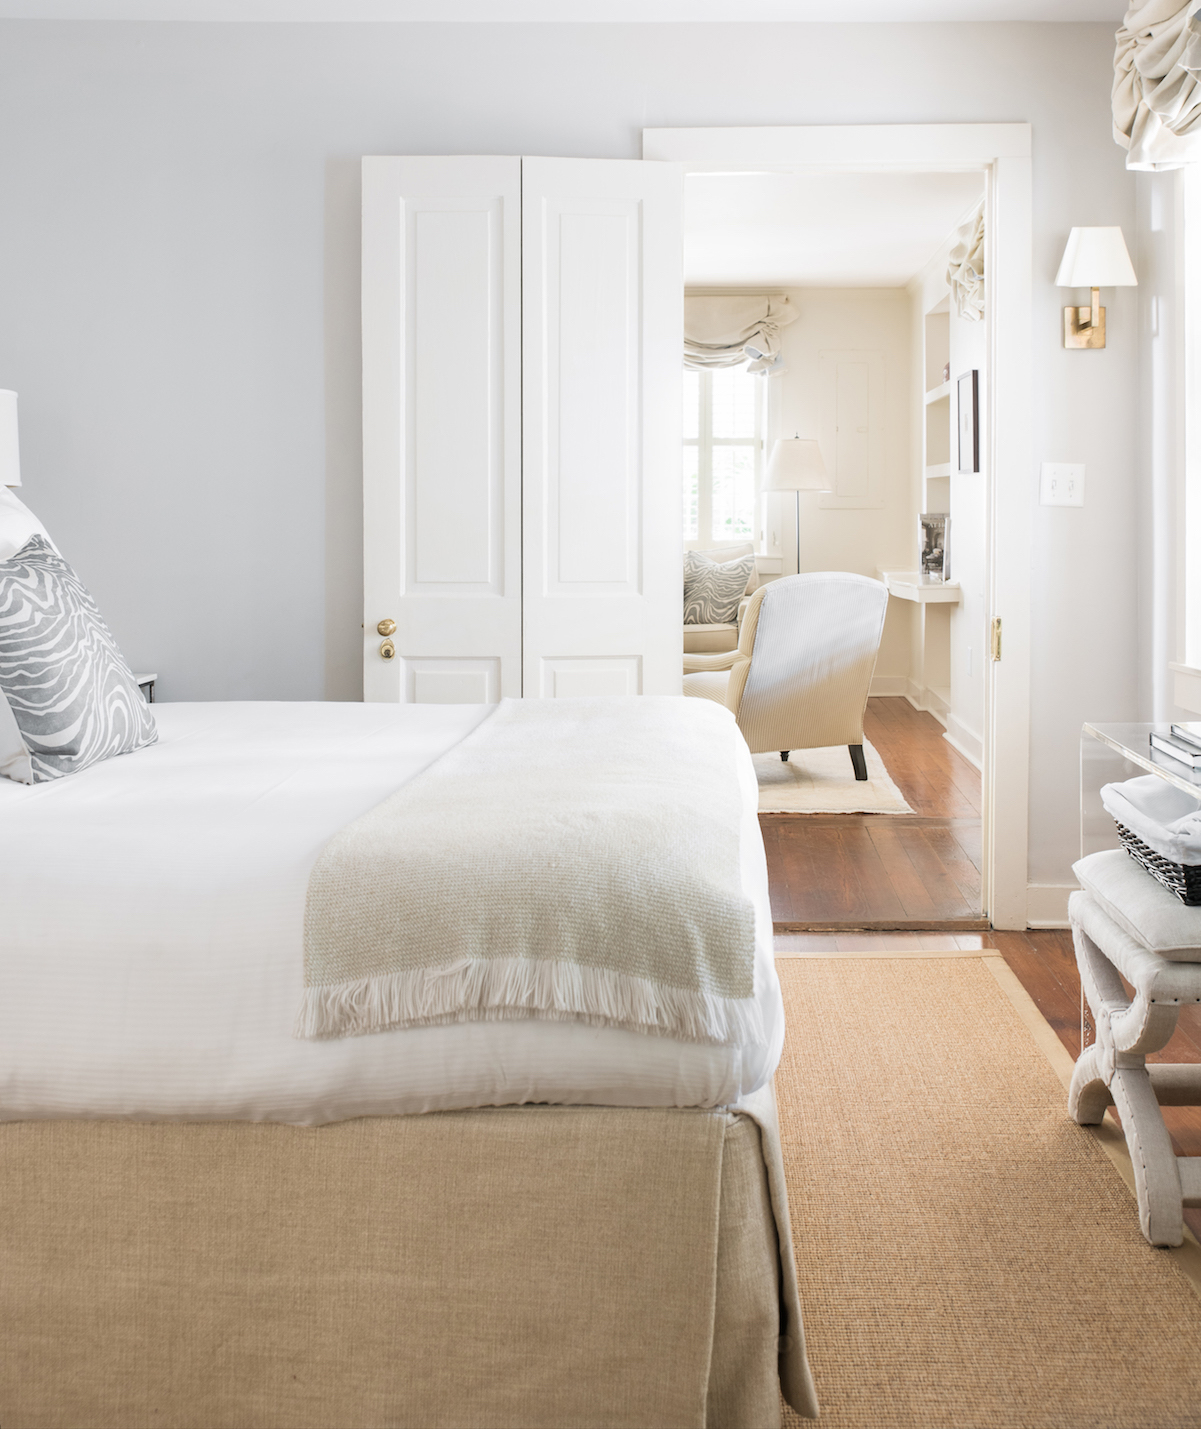 White bedroom with pale neutral accents